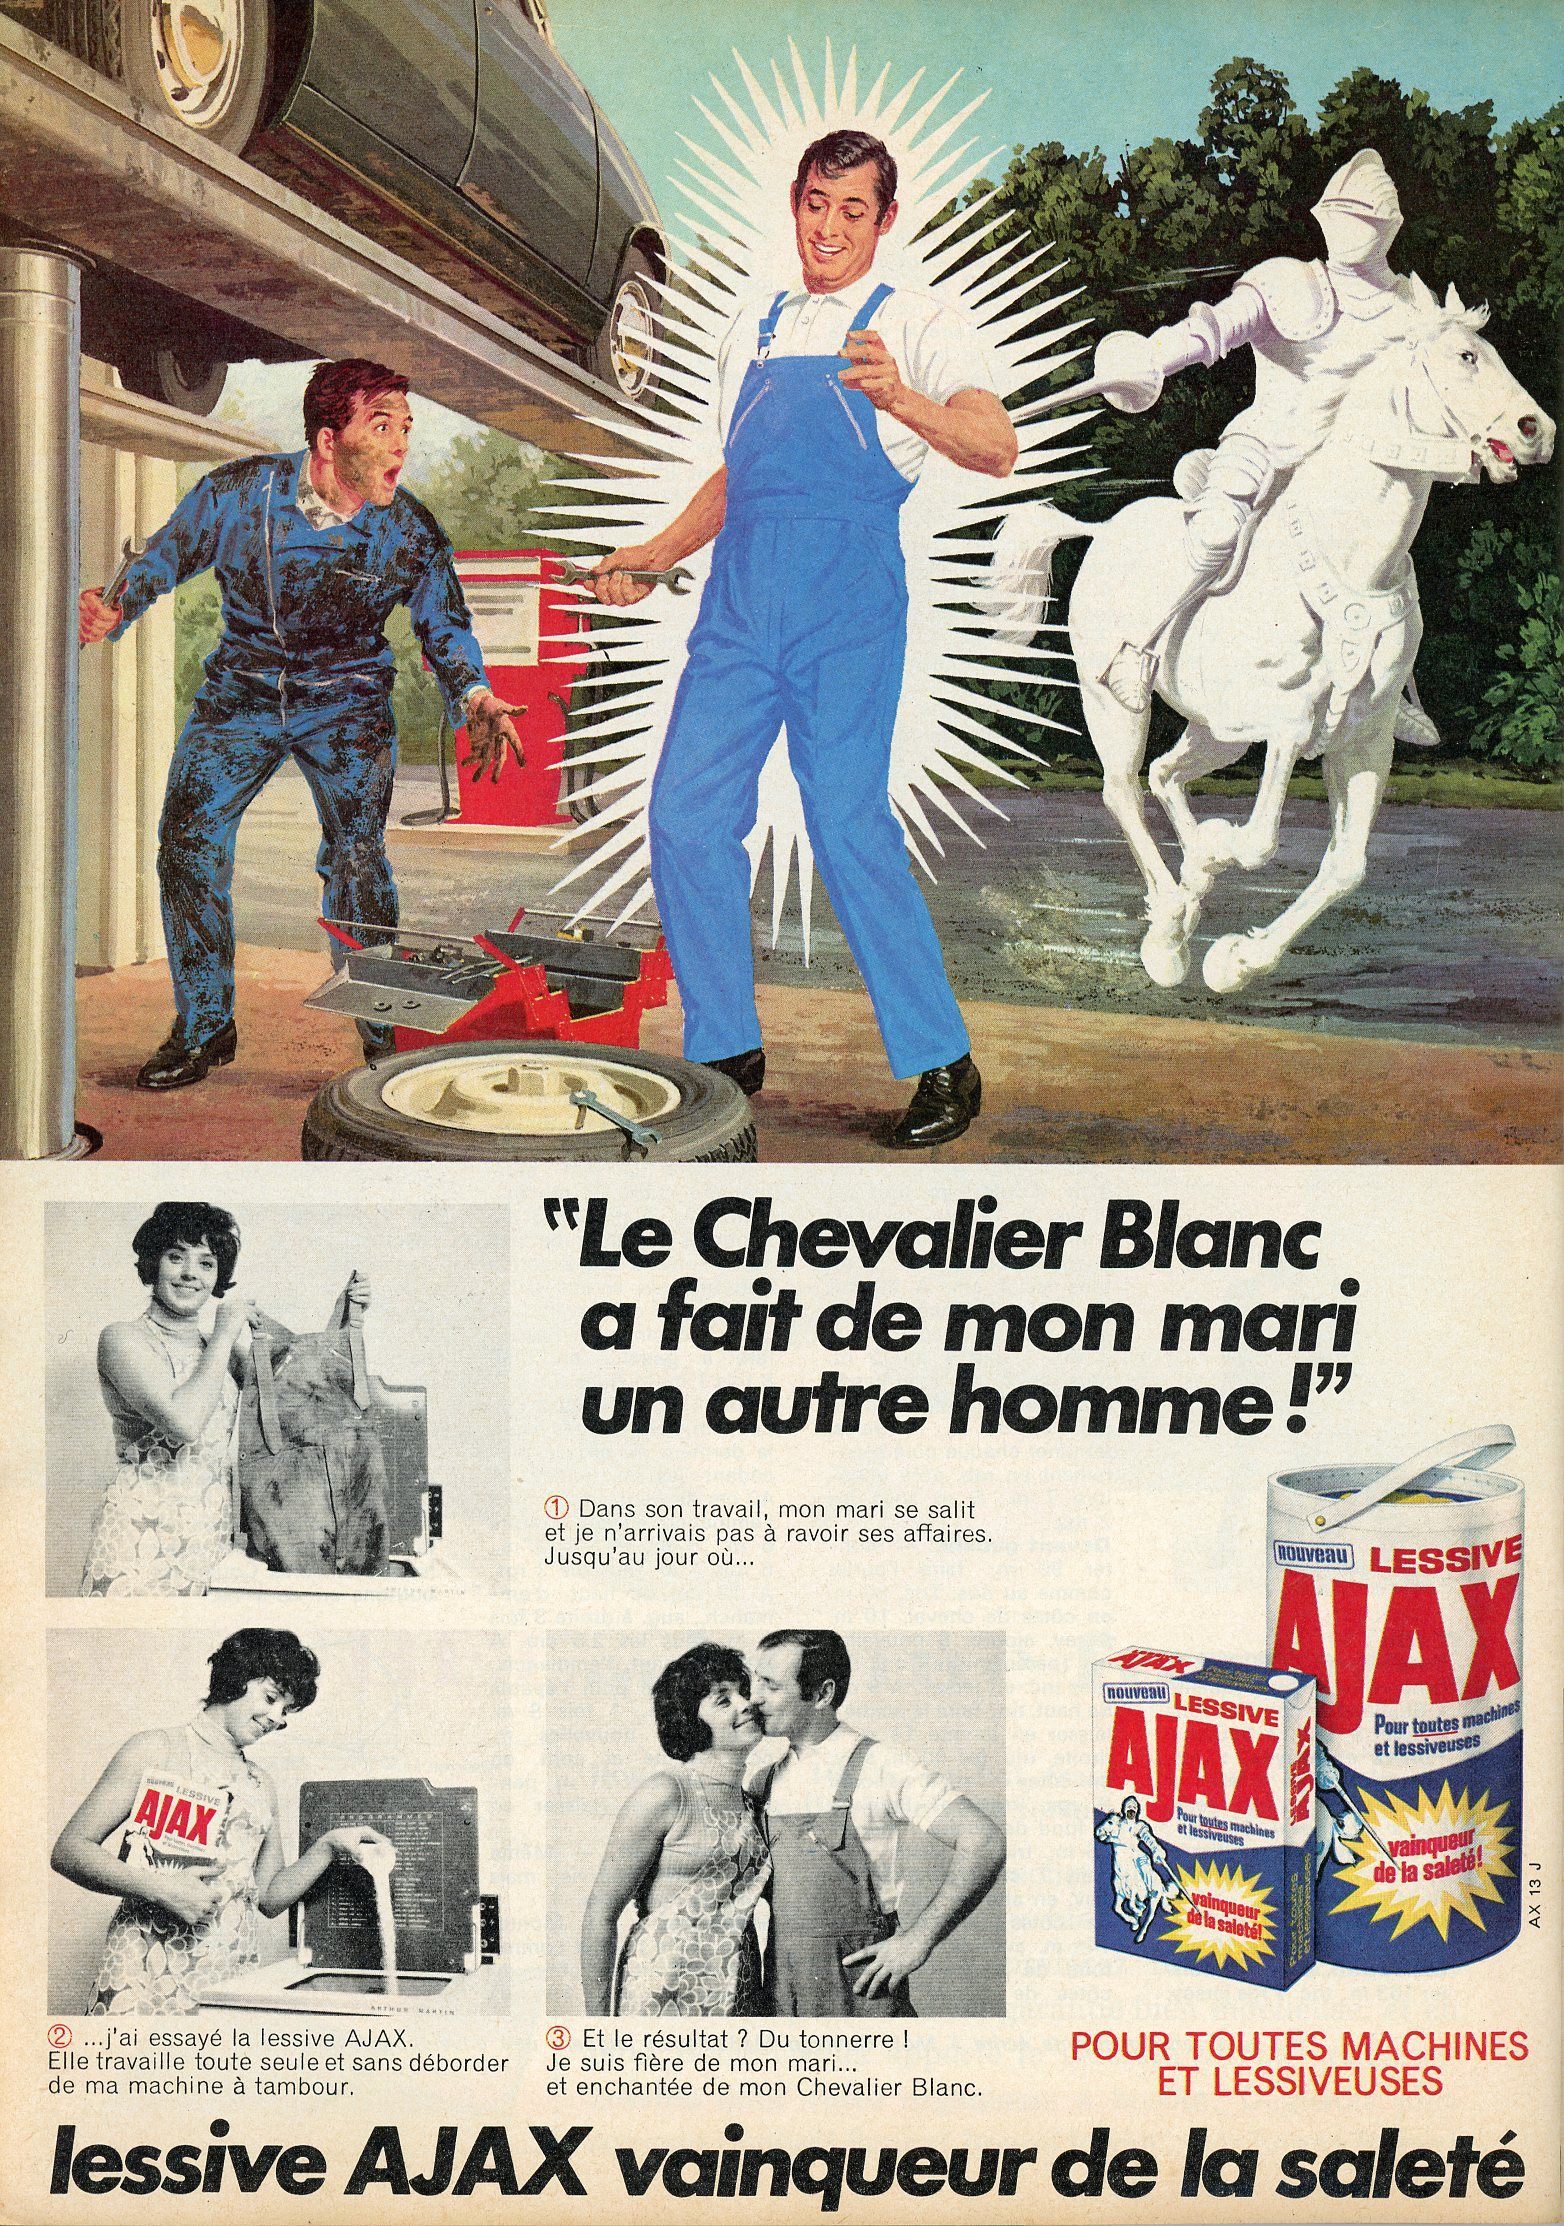 1968 magazine mon ouvrage madame pub pour la lessive ajax le chevalier blanc a fait de. Black Bedroom Furniture Sets. Home Design Ideas